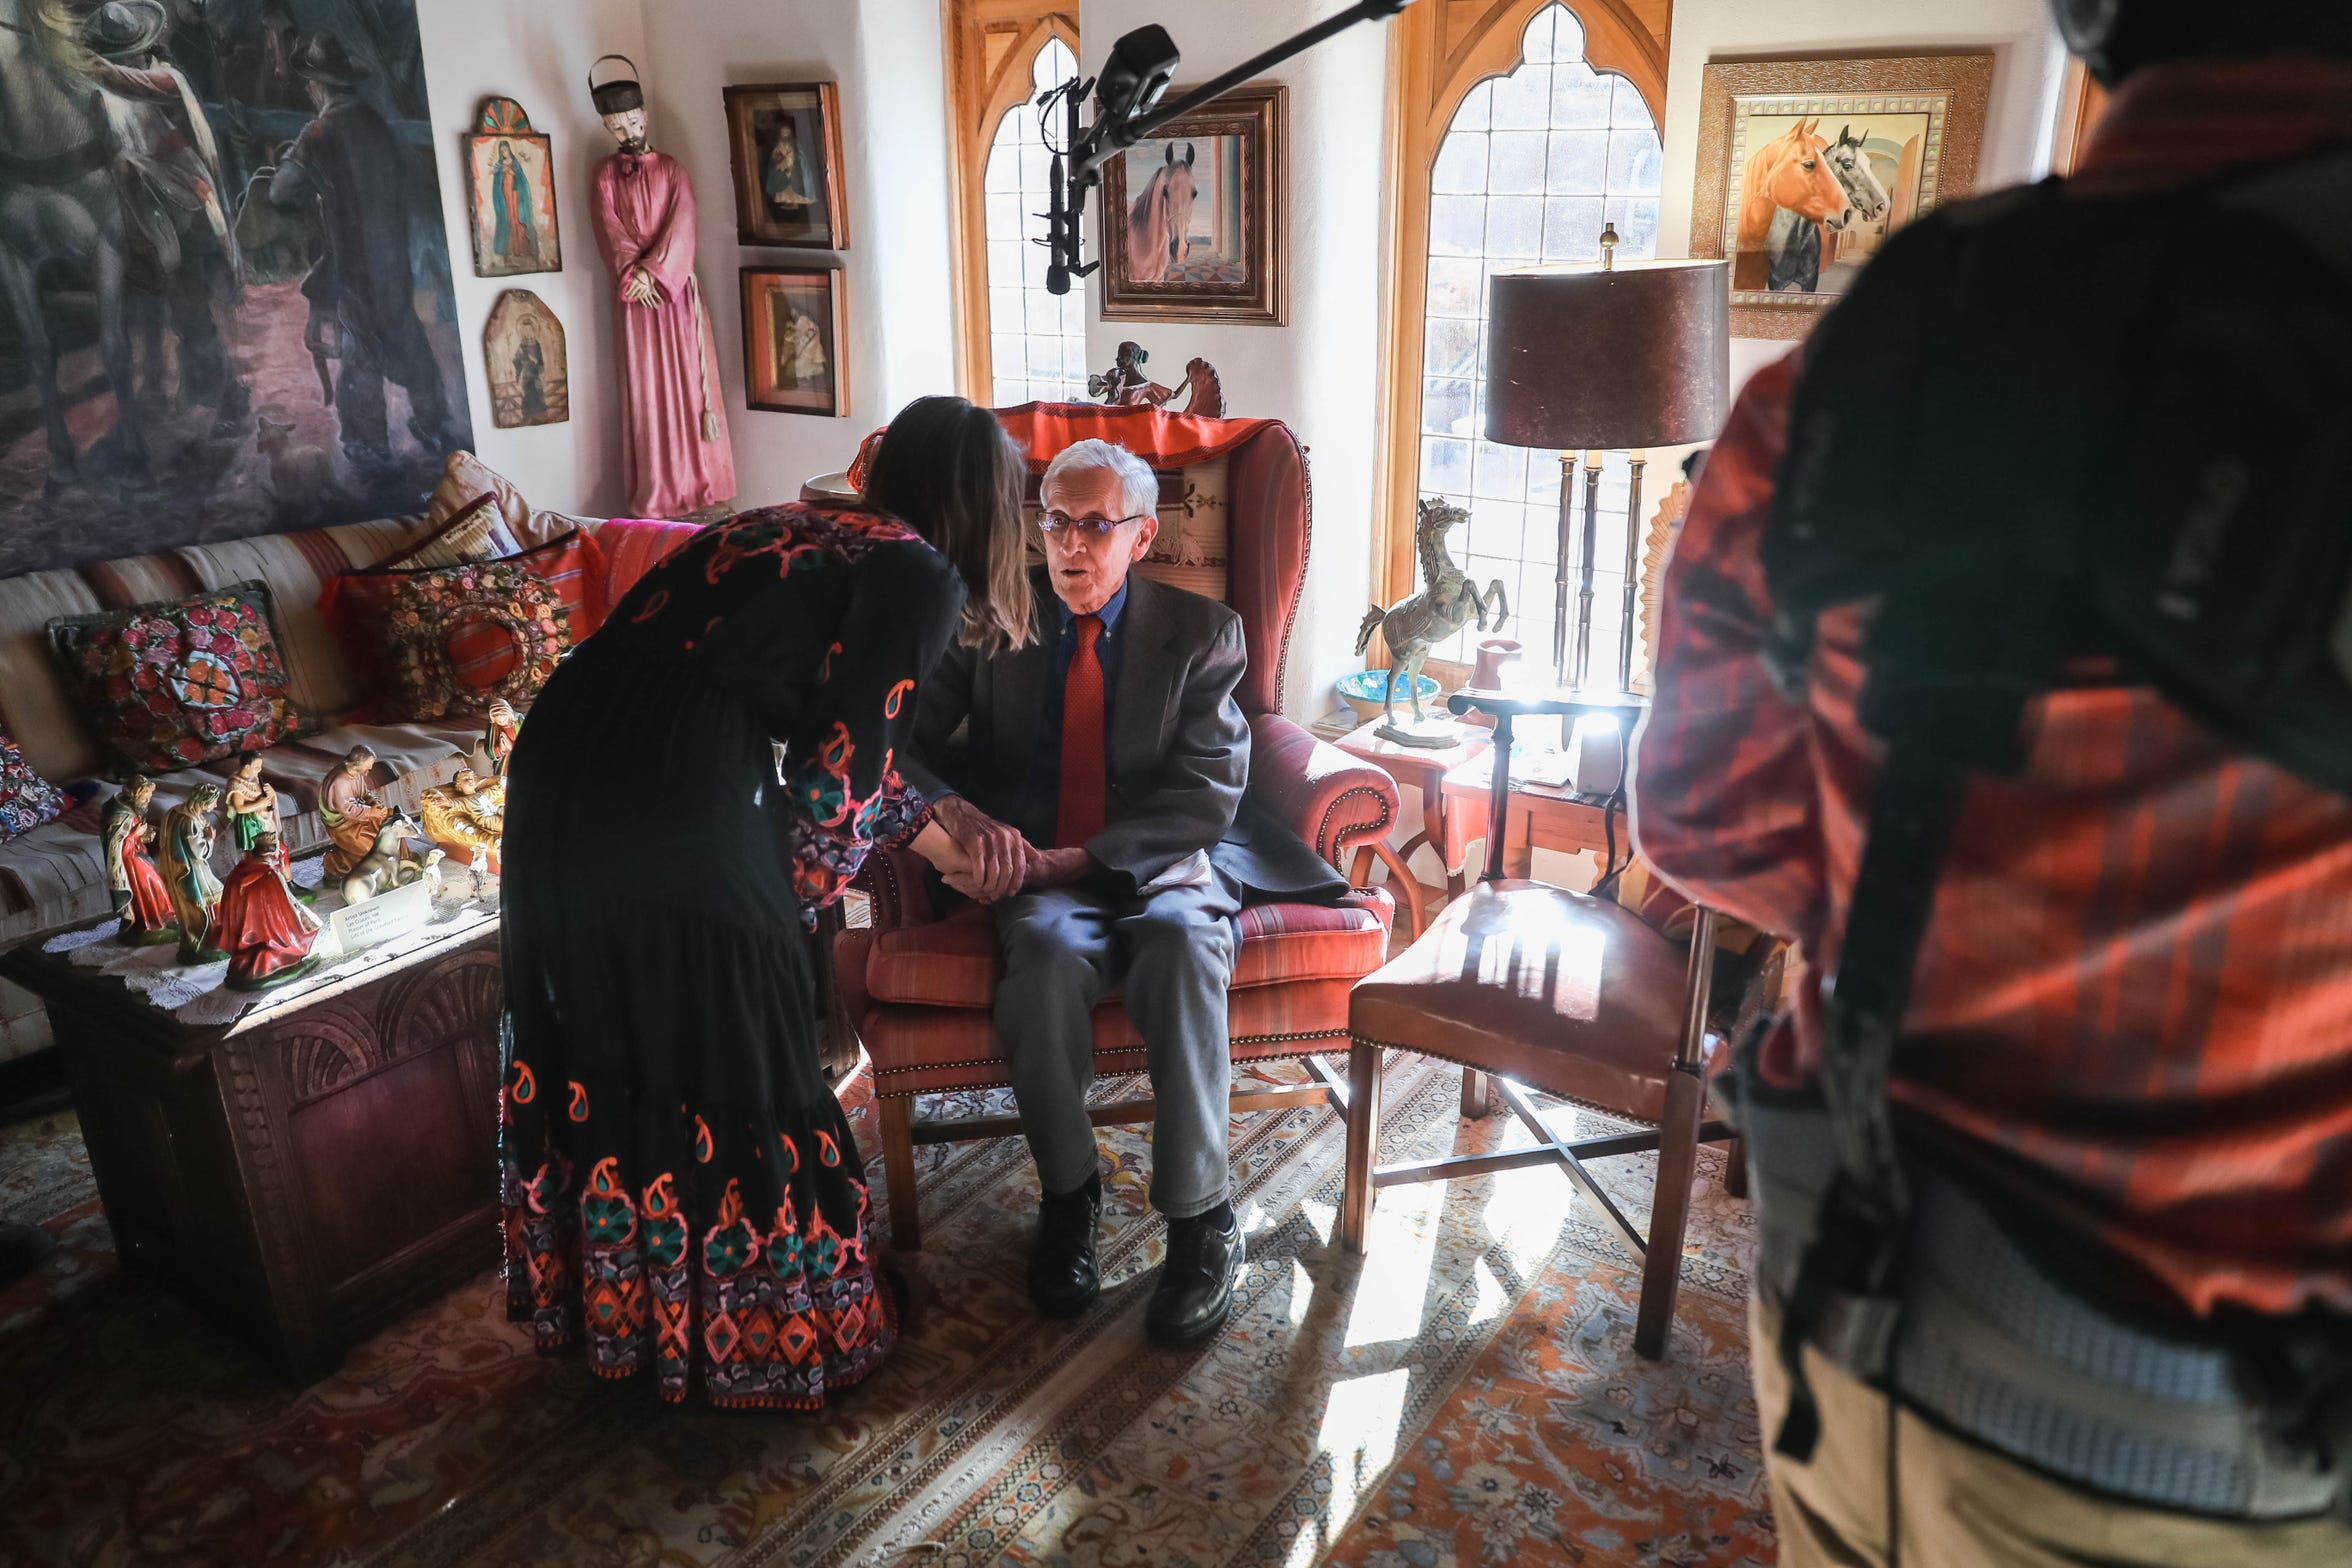 J. Paul Taylor is interviewed inside the Taylor family home in Las Cruces on Sunday, Dec. 15, 2019.